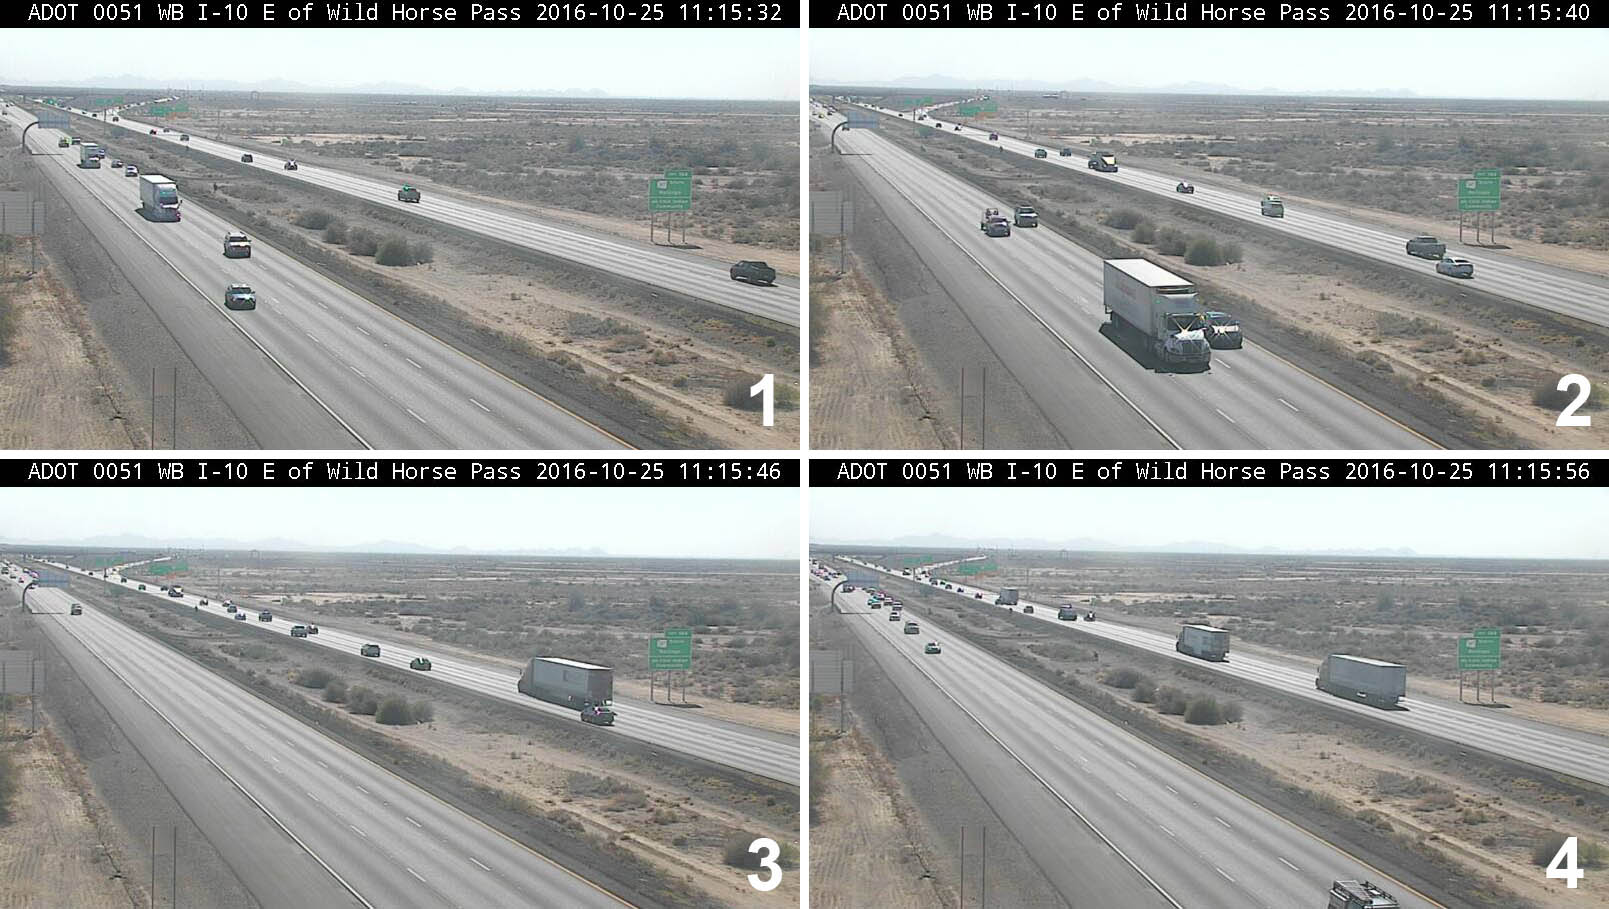 4 Traffic camera image with location in black bar at the top